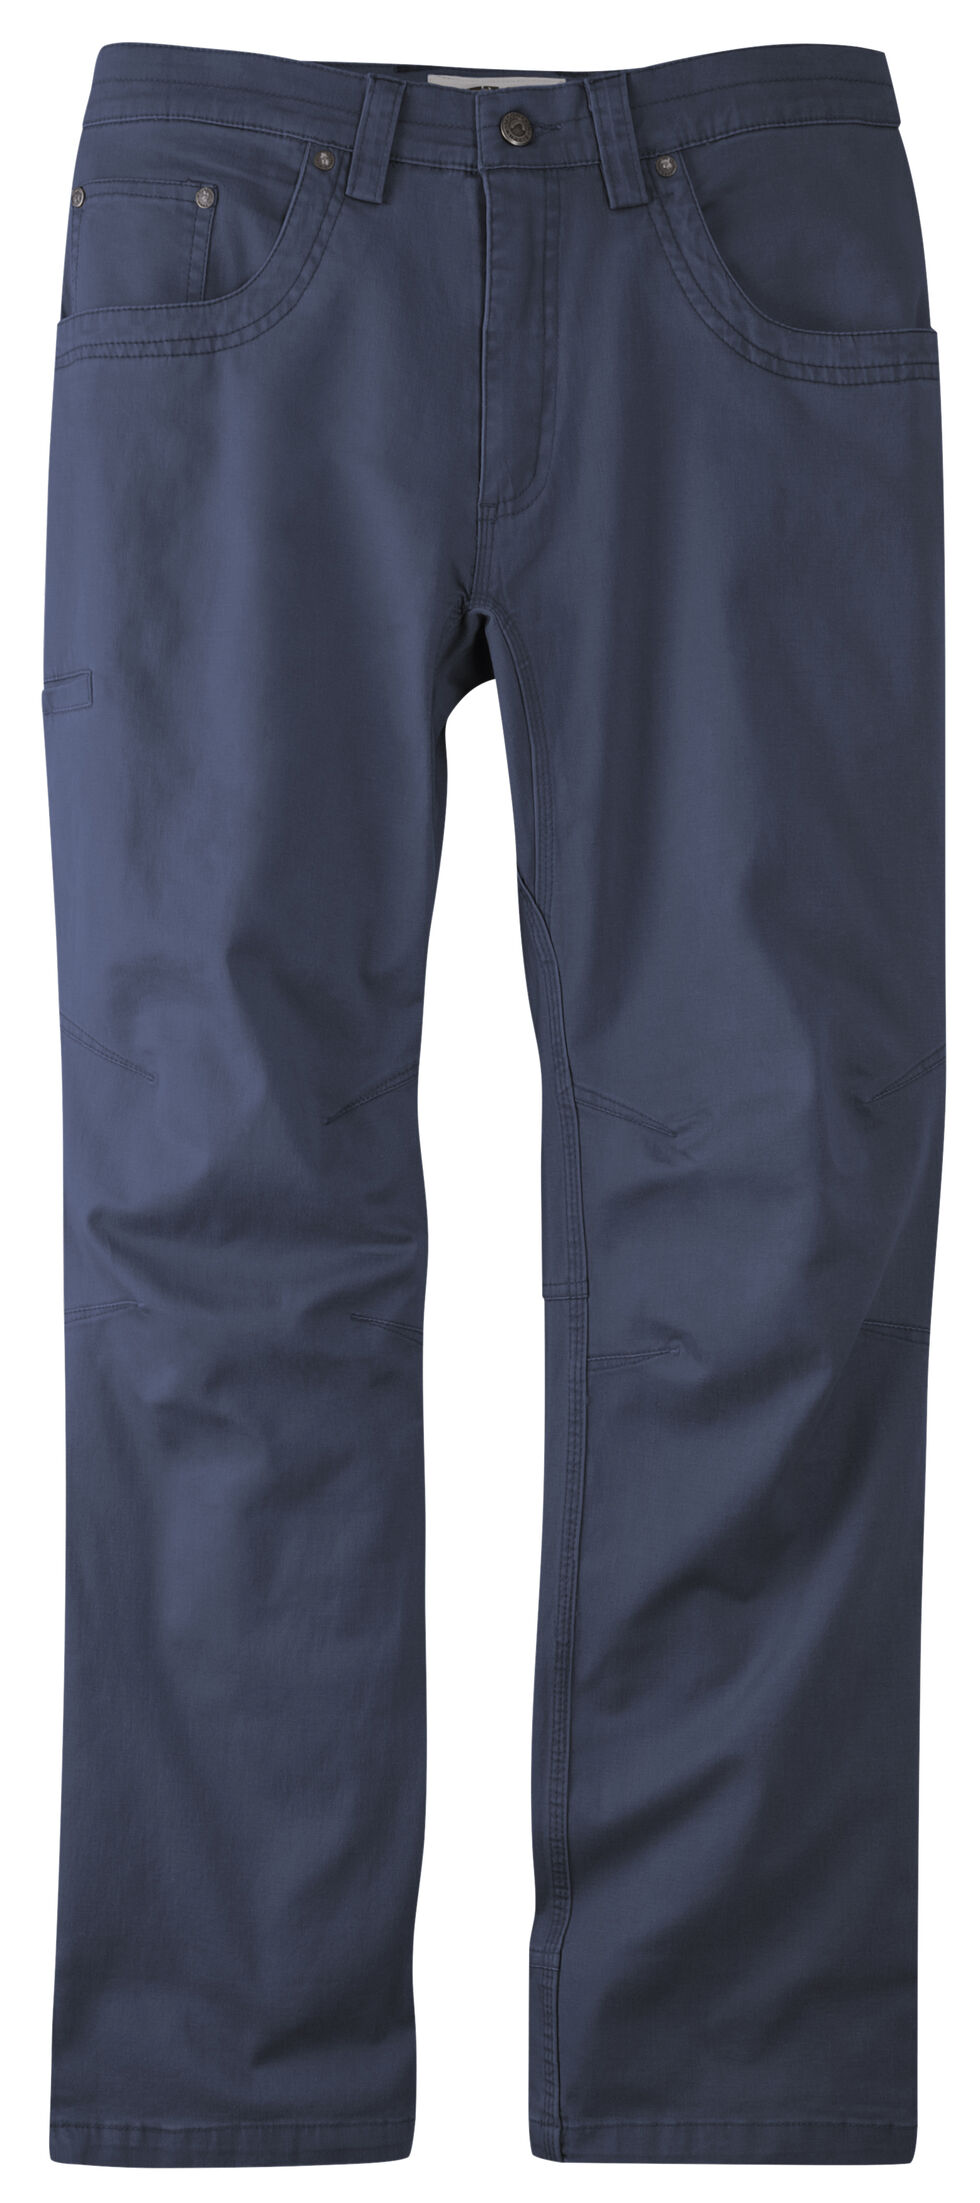 Mountain Khakis Men's Navy Camber 105 Classic Fit Pants , Navy, hi-res